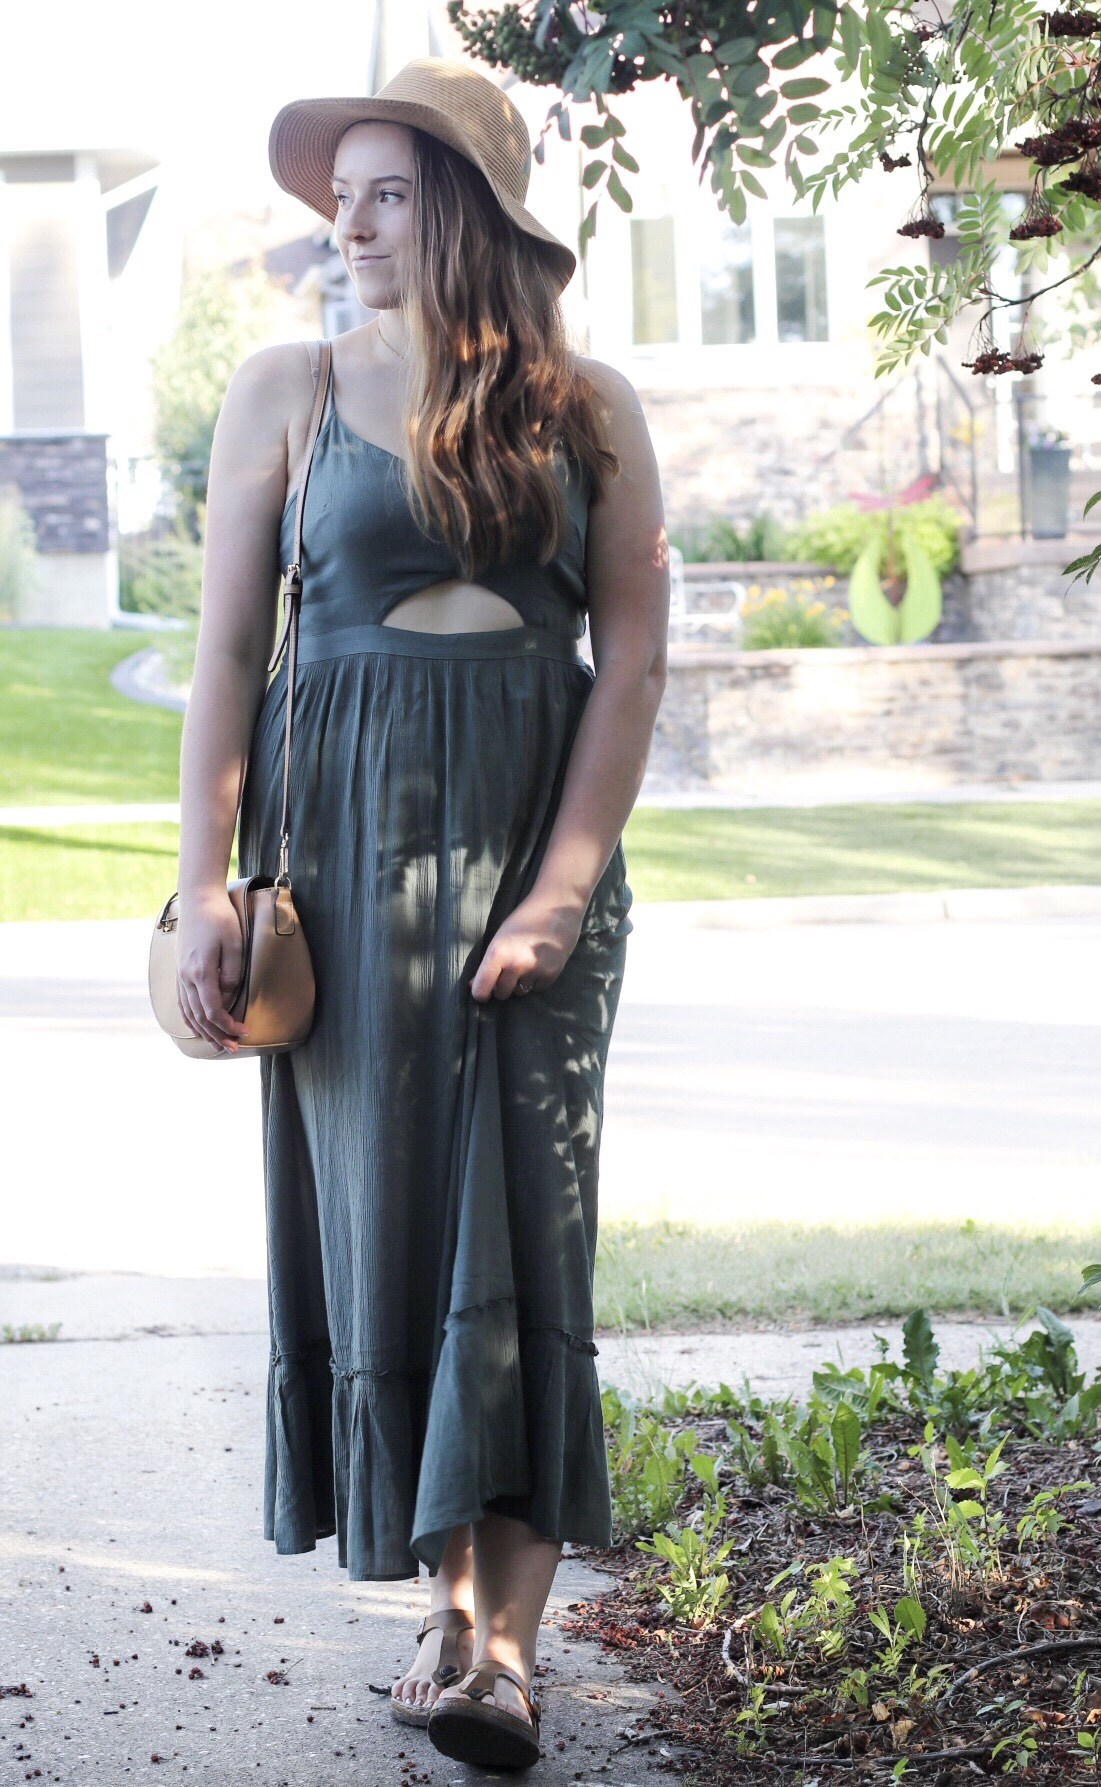 My love of flattering, green maxi dresses began when I was pregnant with Adeline – not only is my favourite colour green but chasing after 2 toddlers with a baby bump was hard enough without my pants or shirt were cutting into my waist